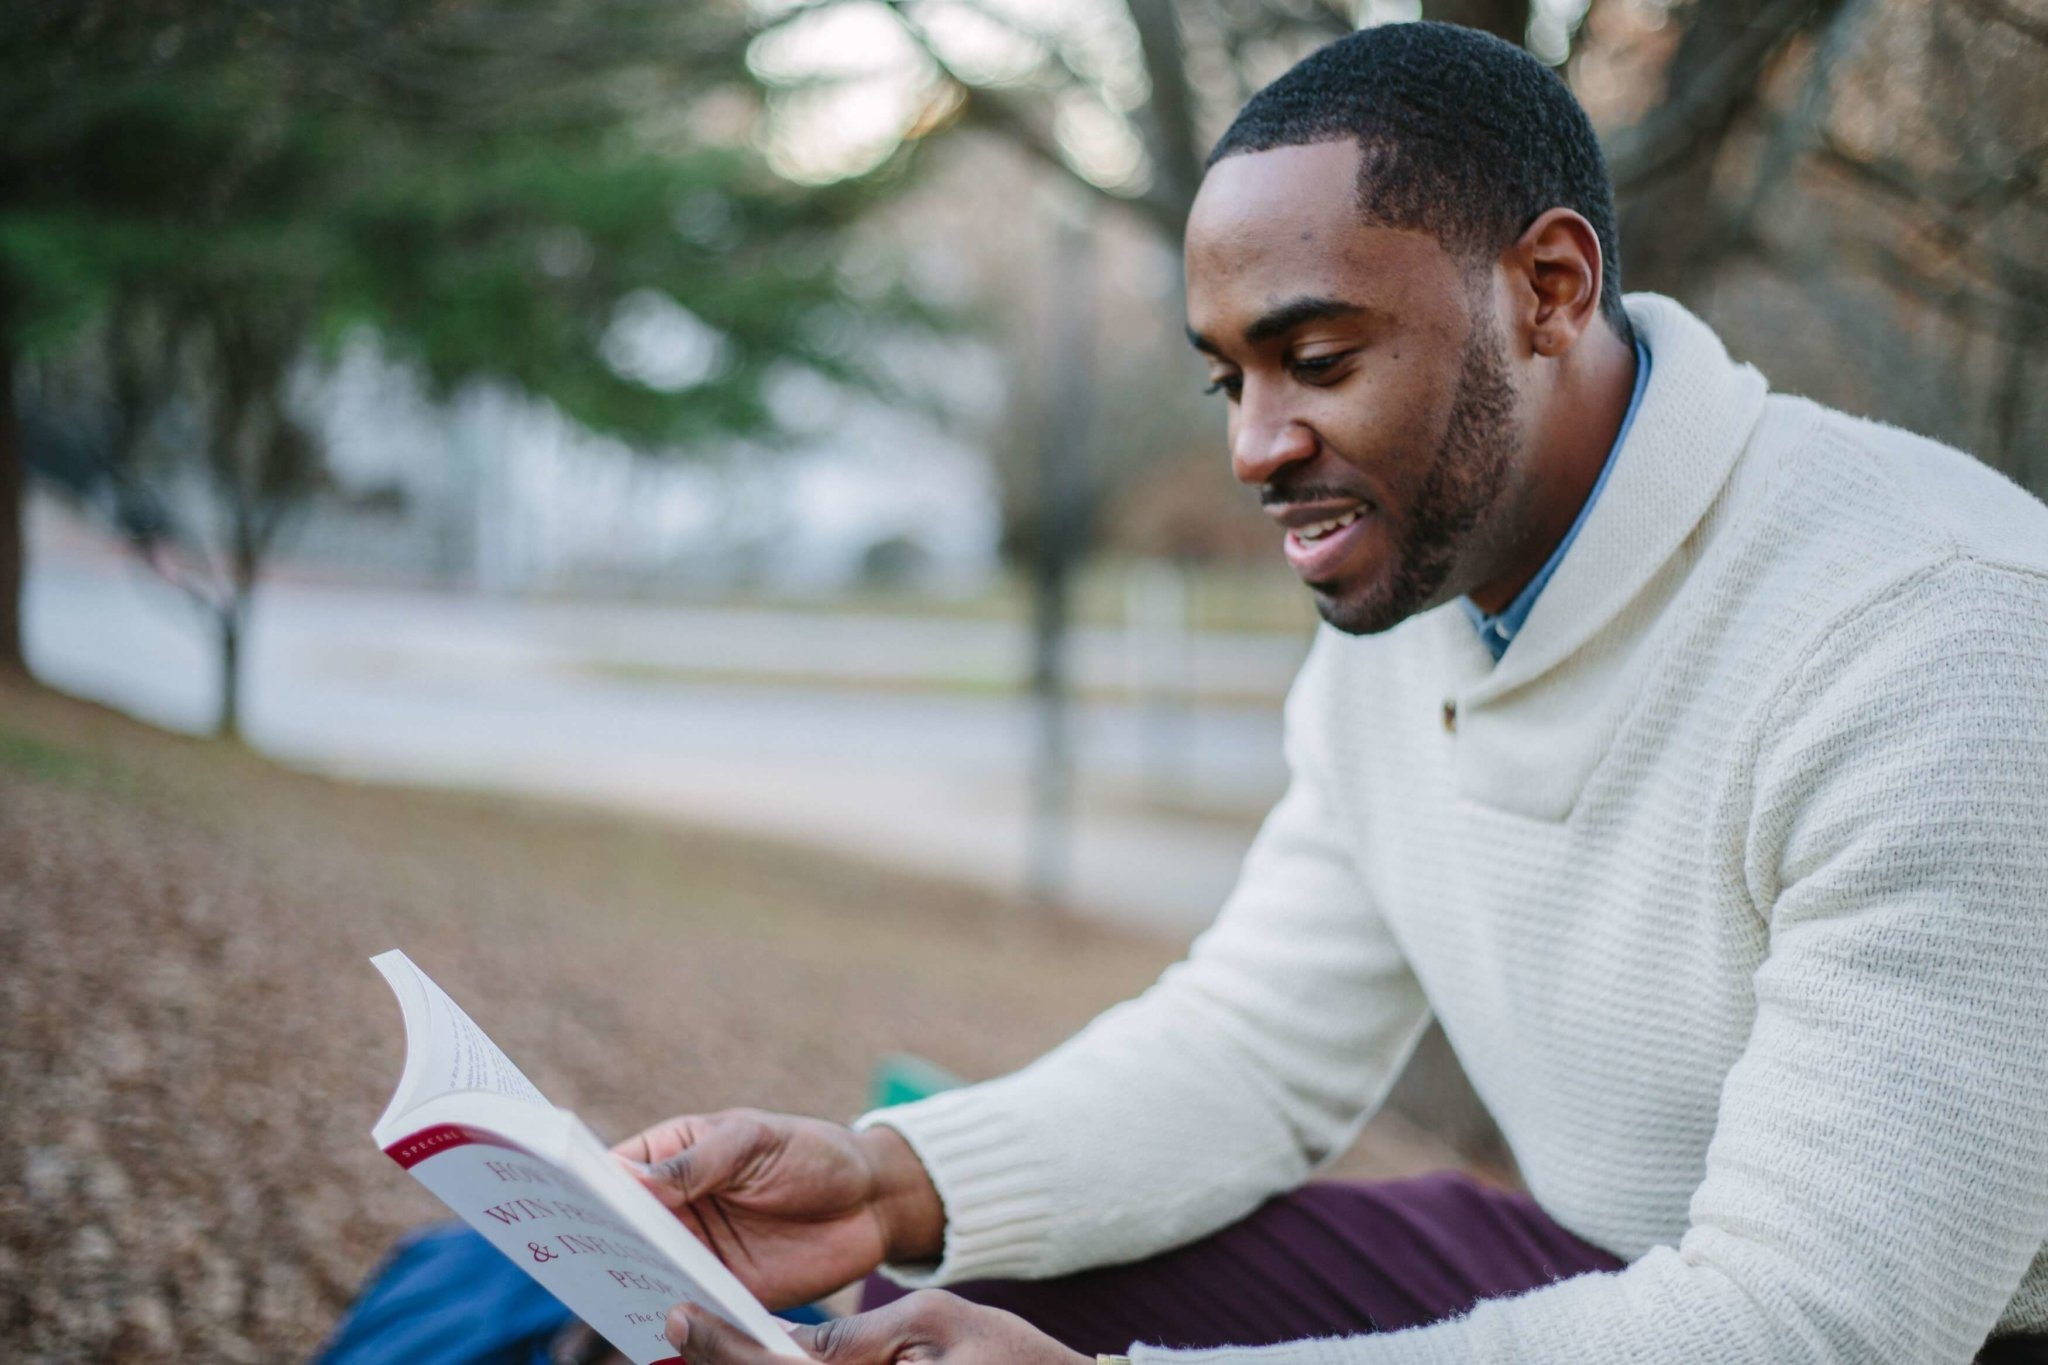 Selective focos photography of man in white sweater reading book